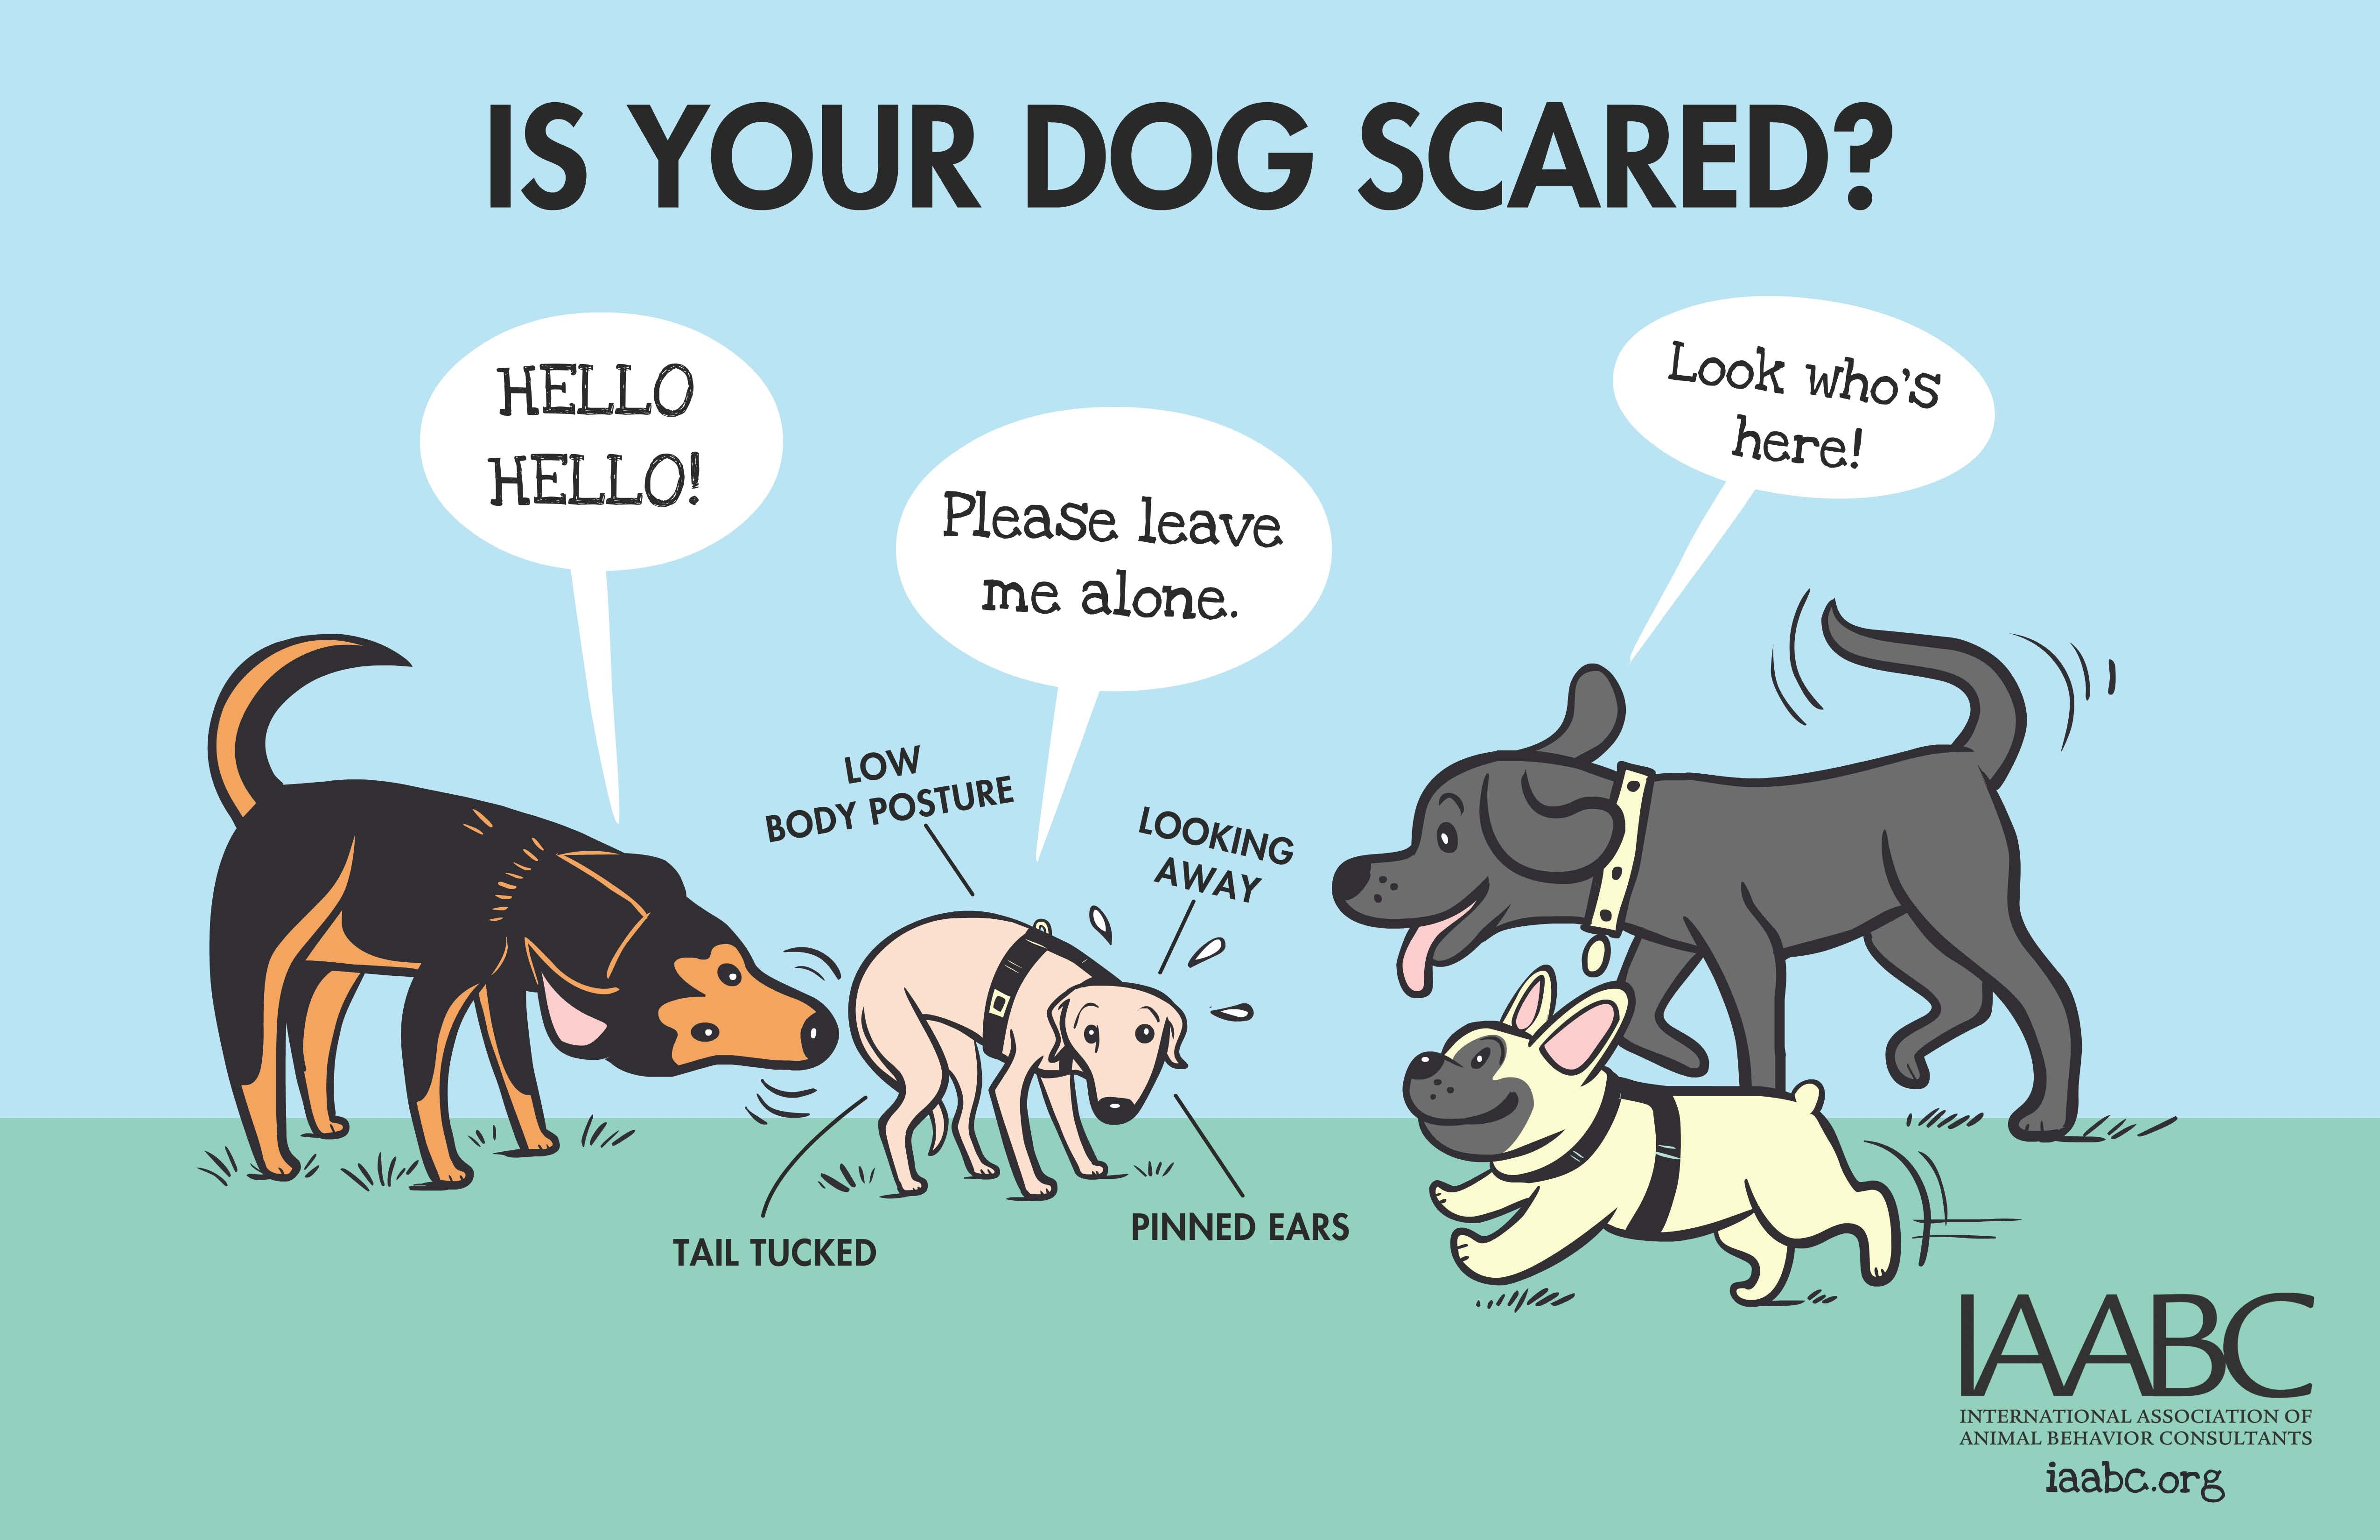 https://i2.wp.com/www.greenacreskennel.com/blog/wp-content/uploads/2016/02/iaabc-dogpark-Is-Your-Dog-Scared.jpg